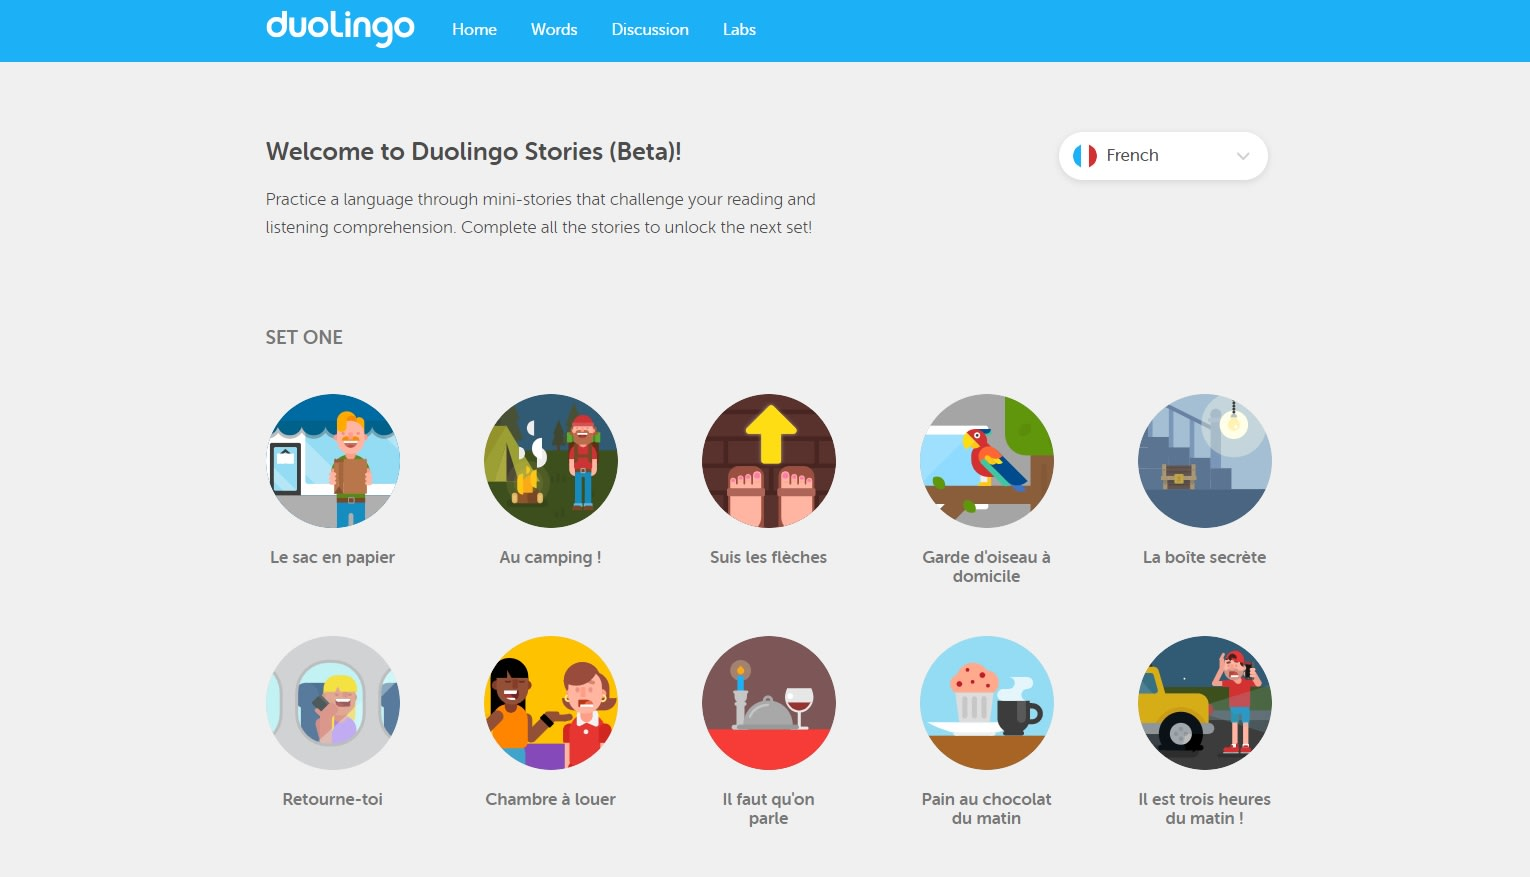 Duolingo adds French and German to its short story library